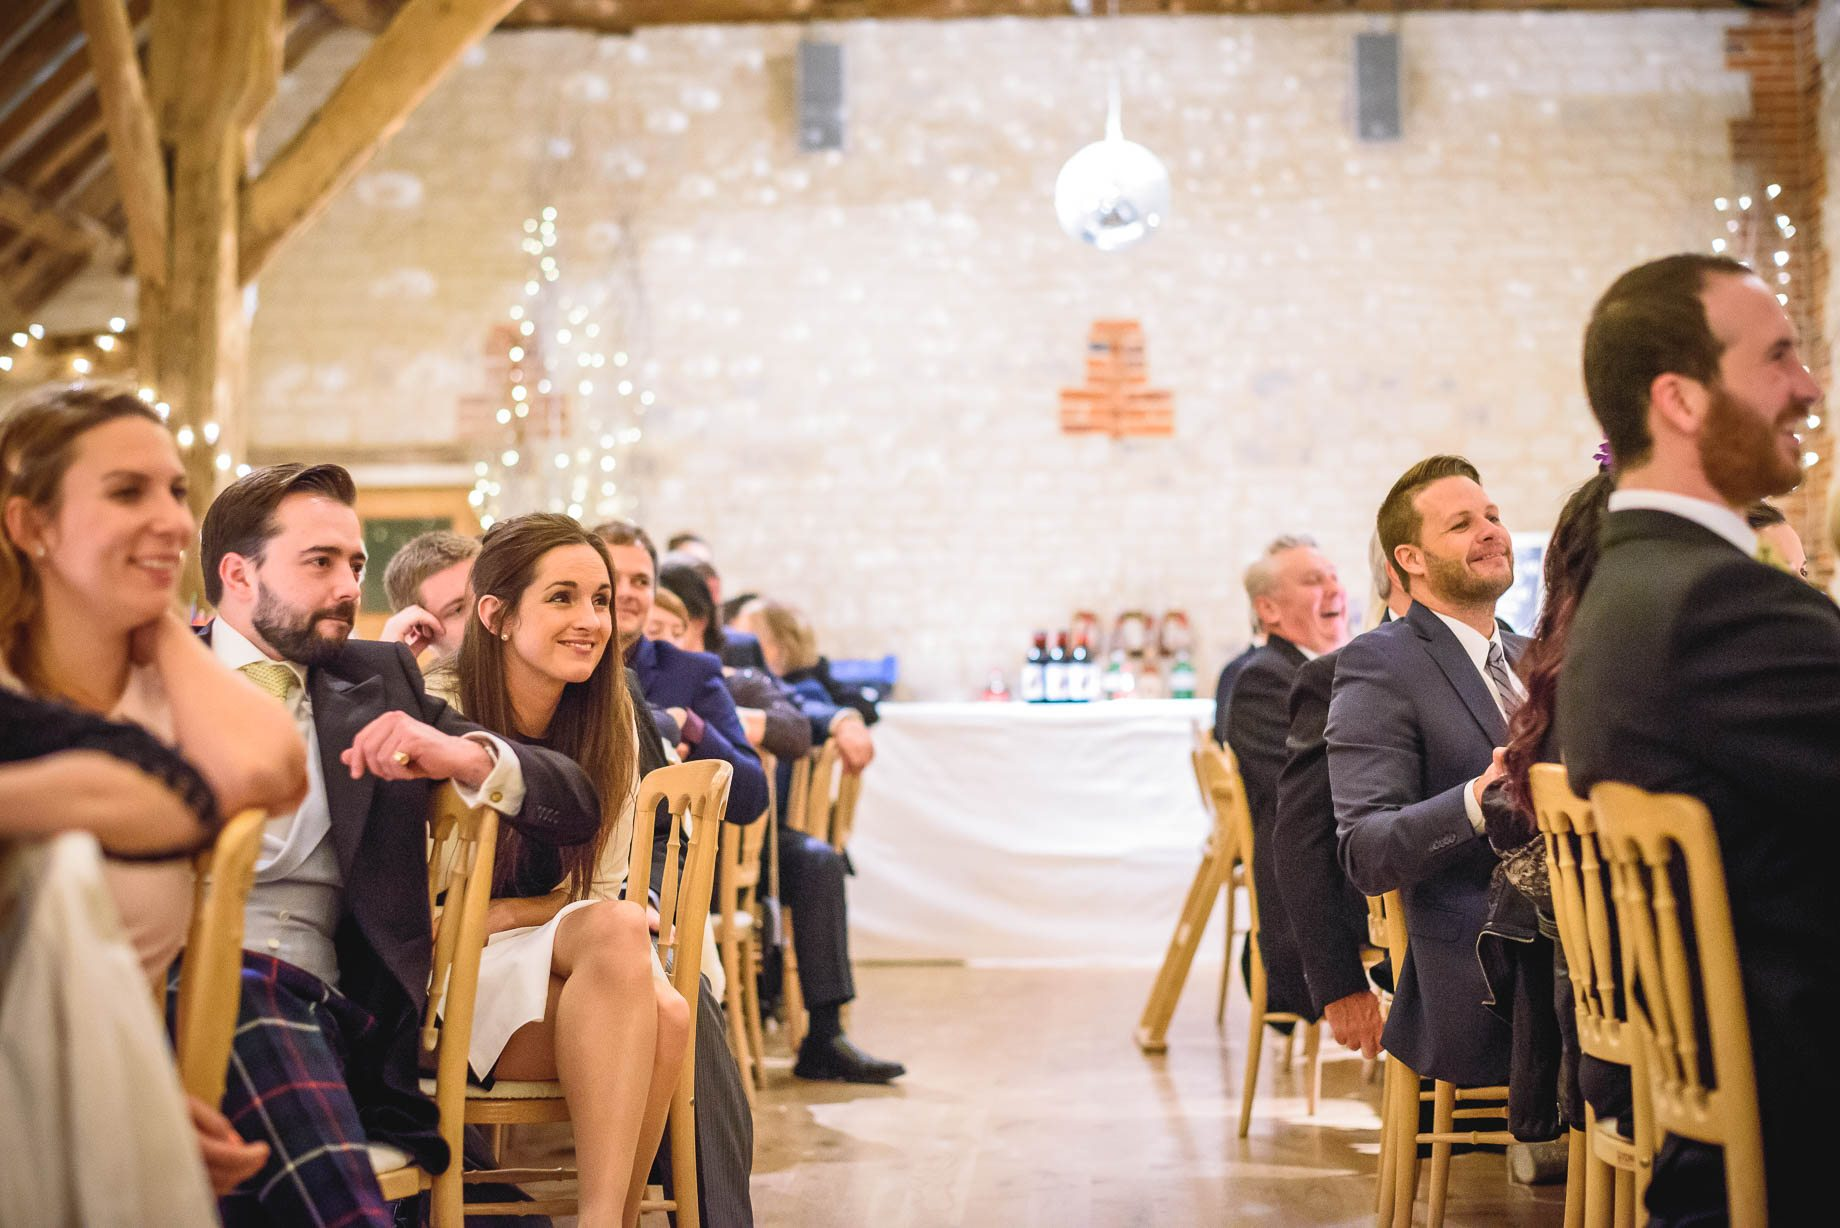 Bury Court Barn wedding photography - Ashley and Henry by Guy Collier Photography (161 of 188)